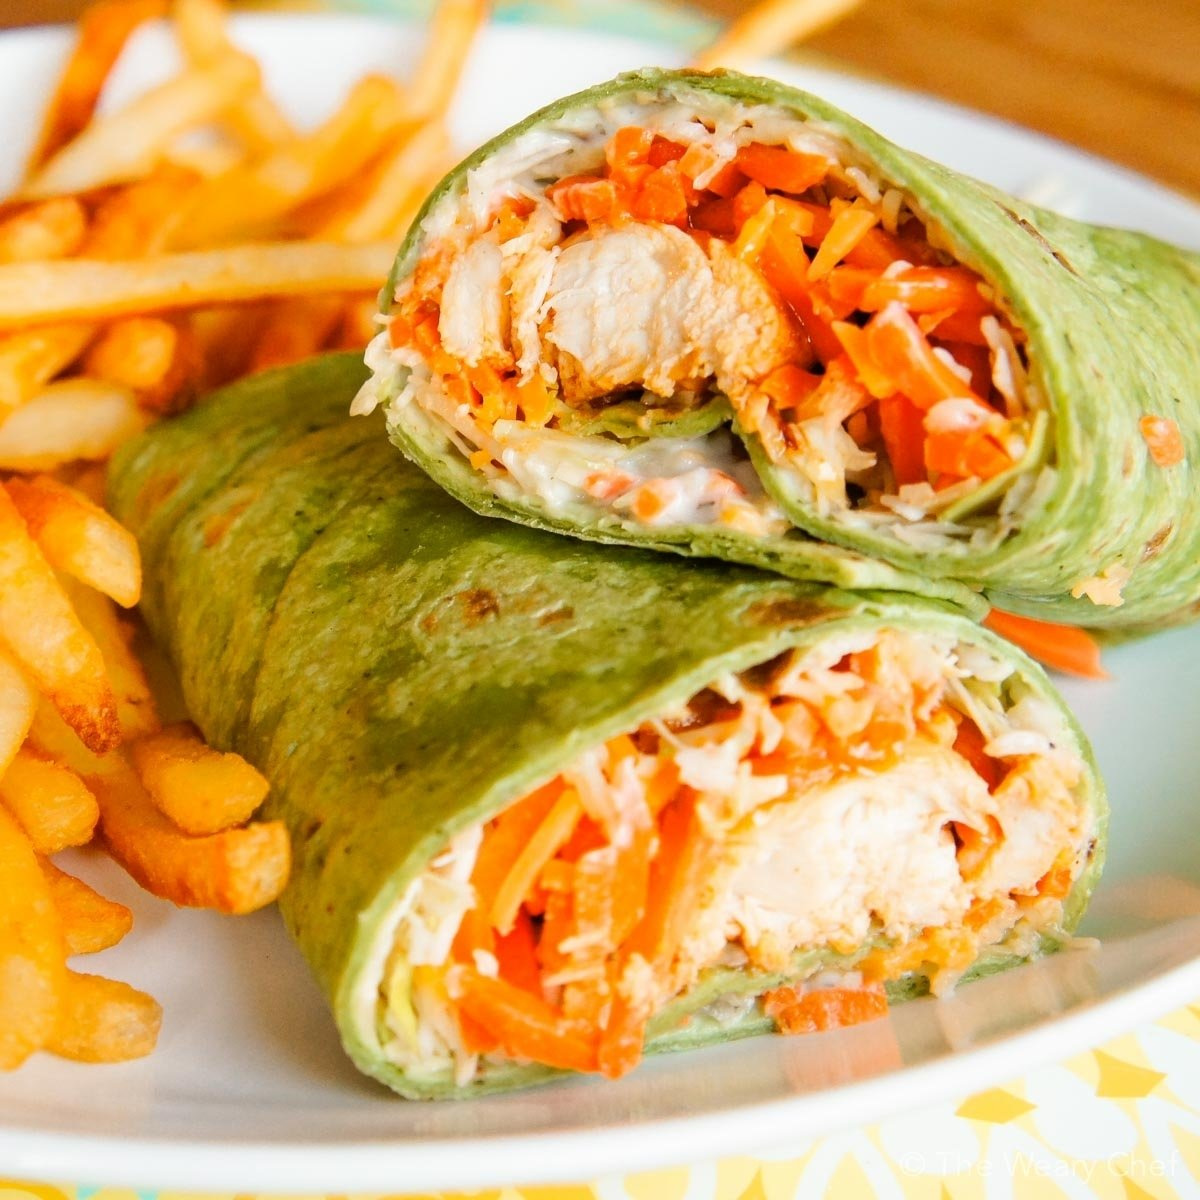 10 Cute Easy To Make Dinner Ideas buffalo chicken wraps a fun and tasty dinner idea the weary chef 6 2021